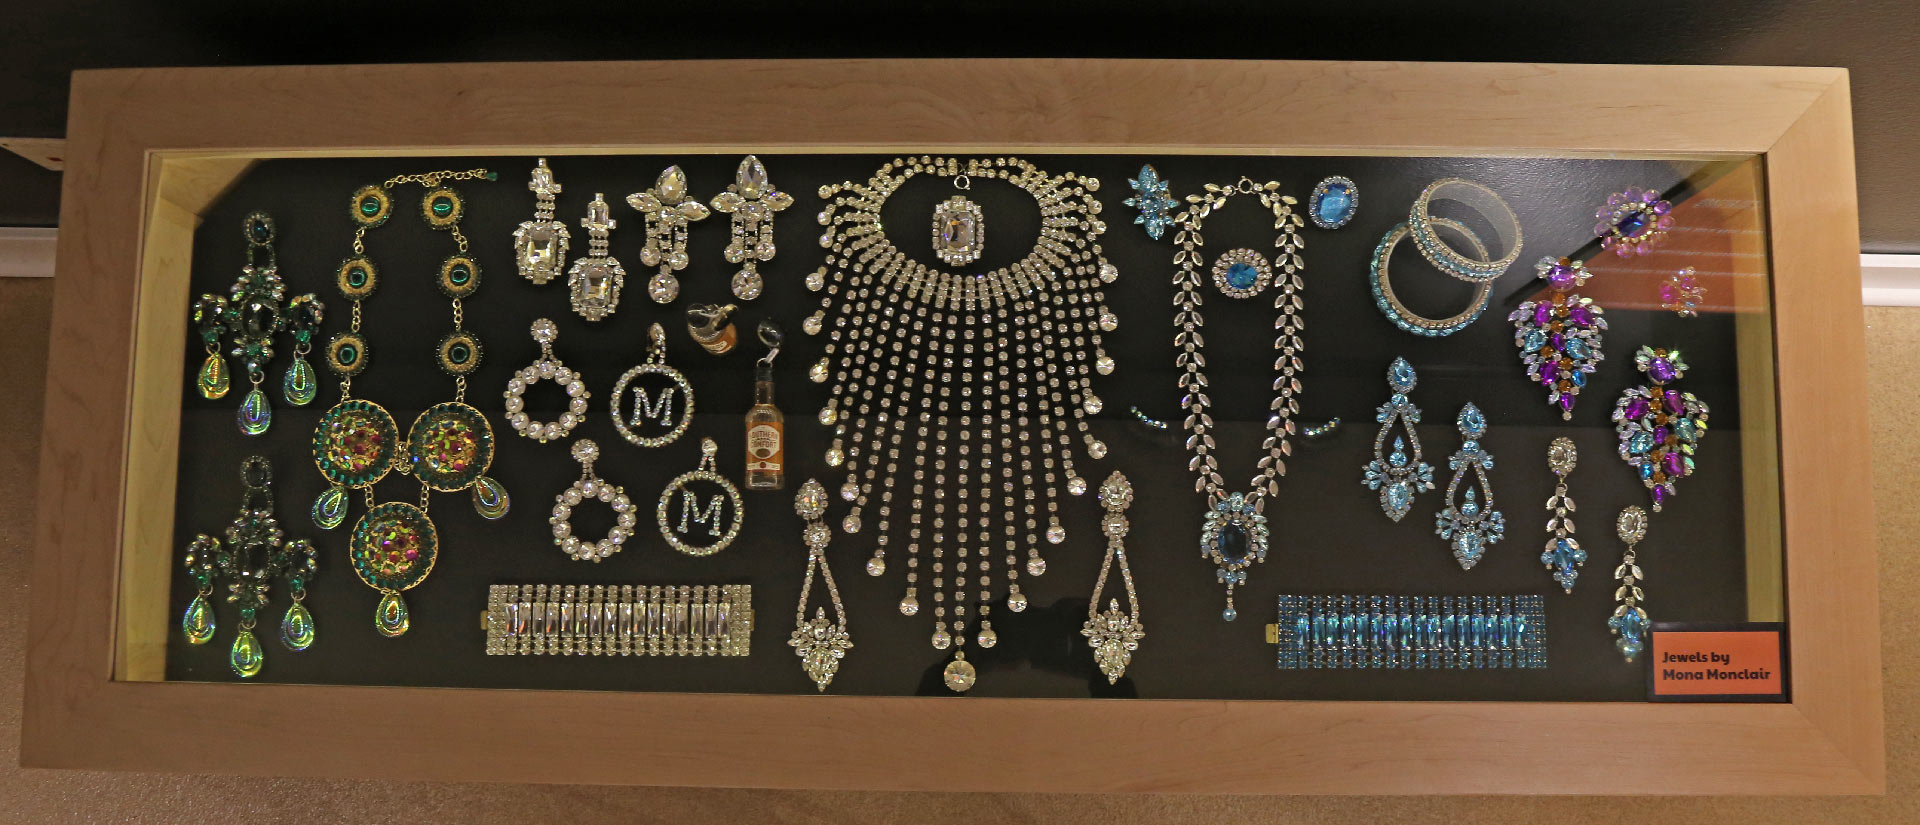 Rectangular Jewlery case displaying colorful pieces of jewlery